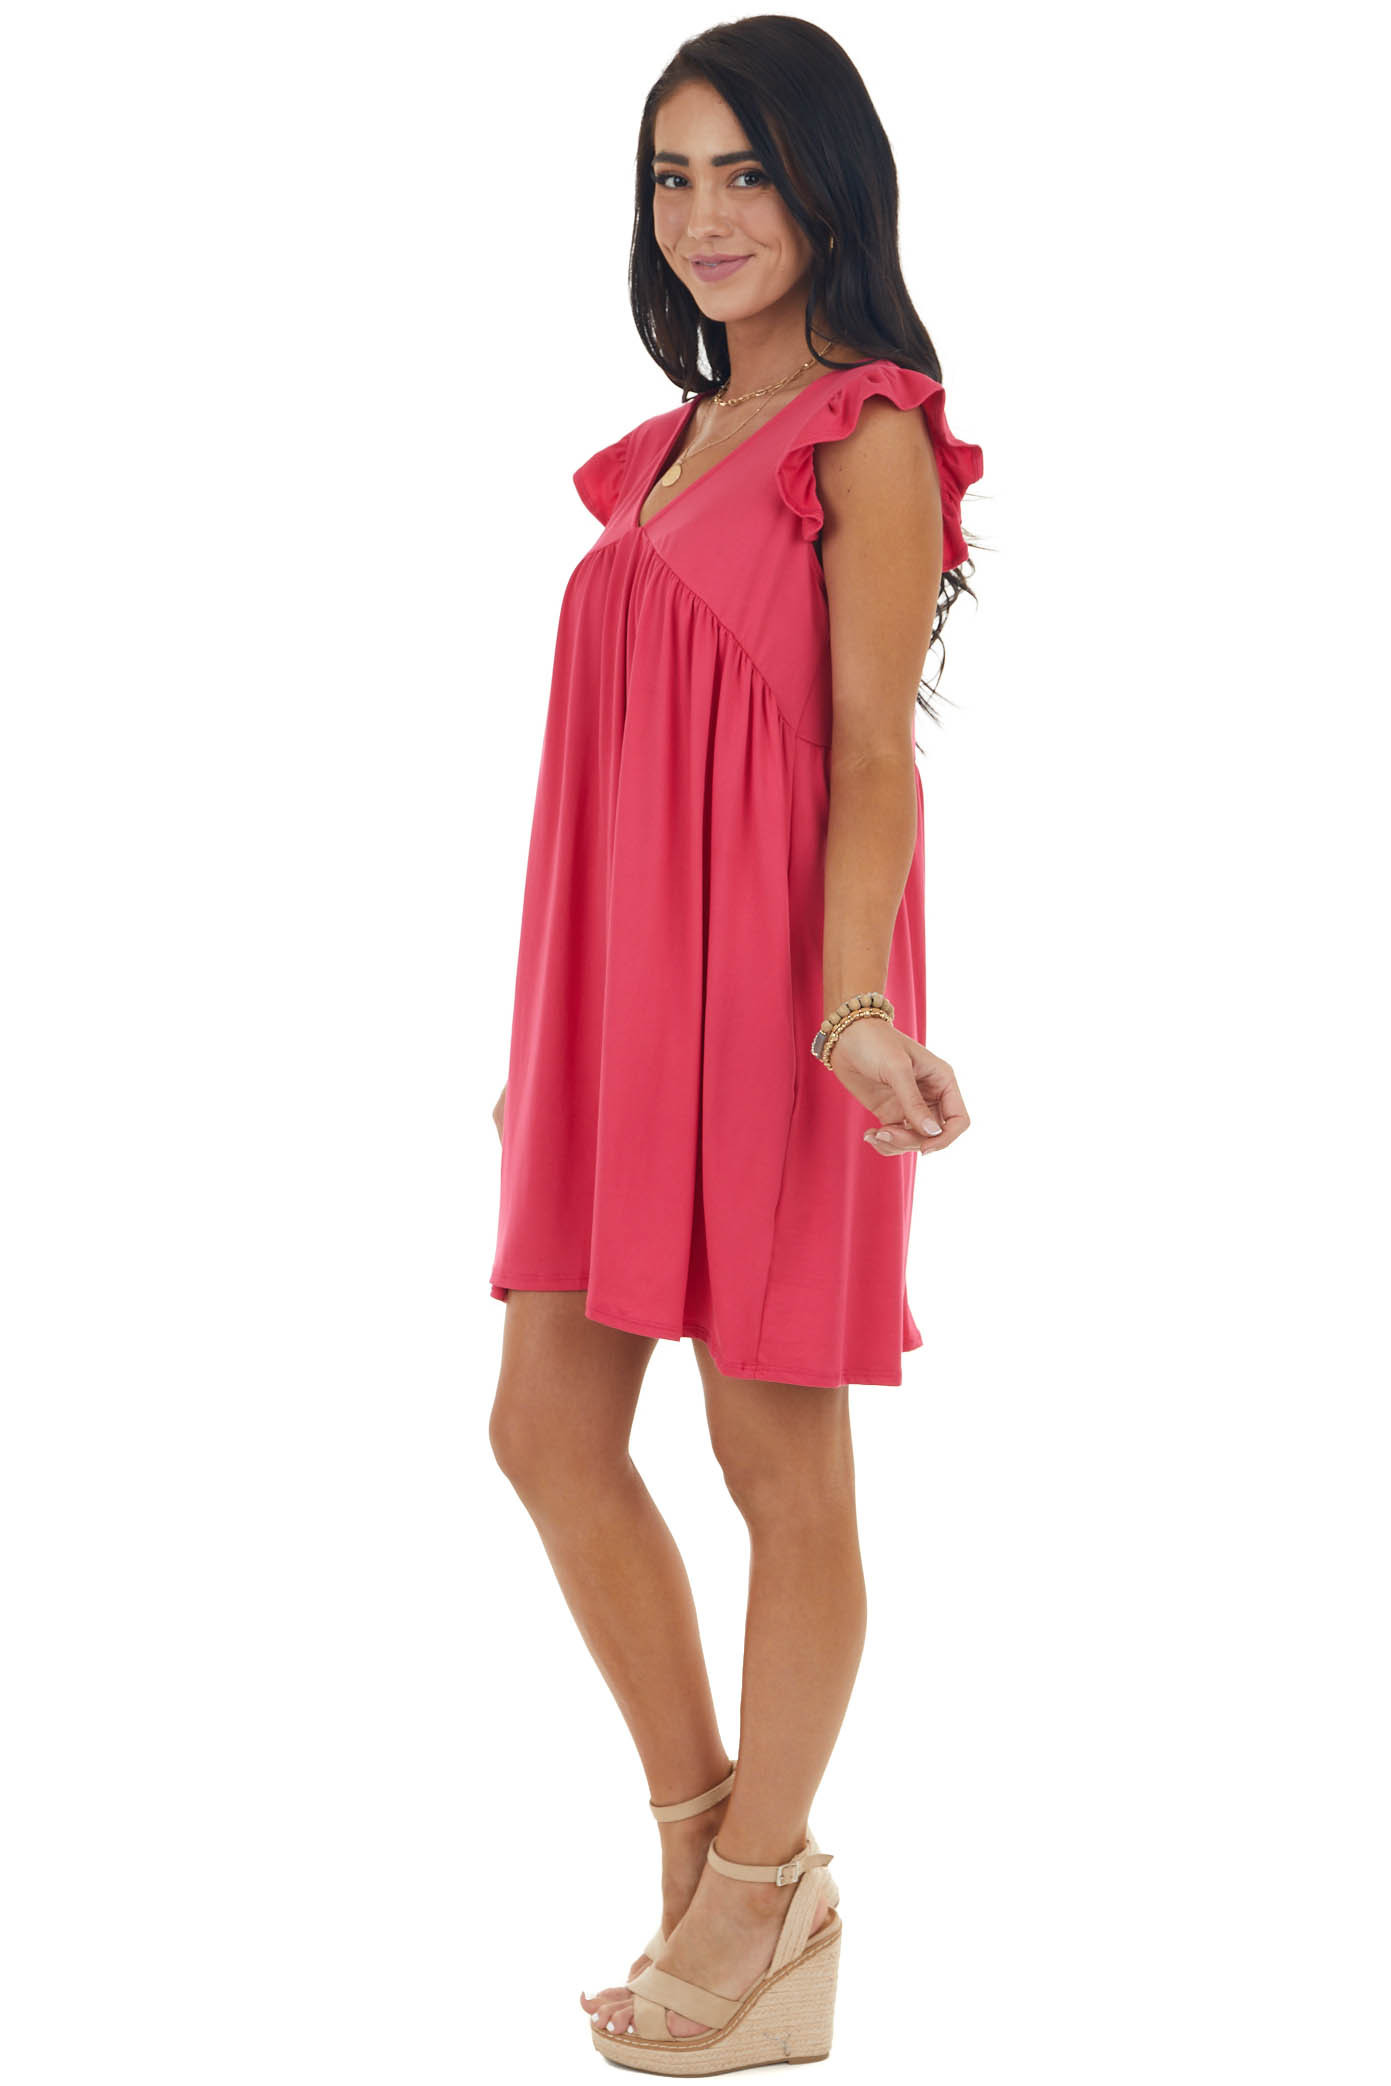 Hot Pink Baby Doll Mini Dress with Ruffle Detail